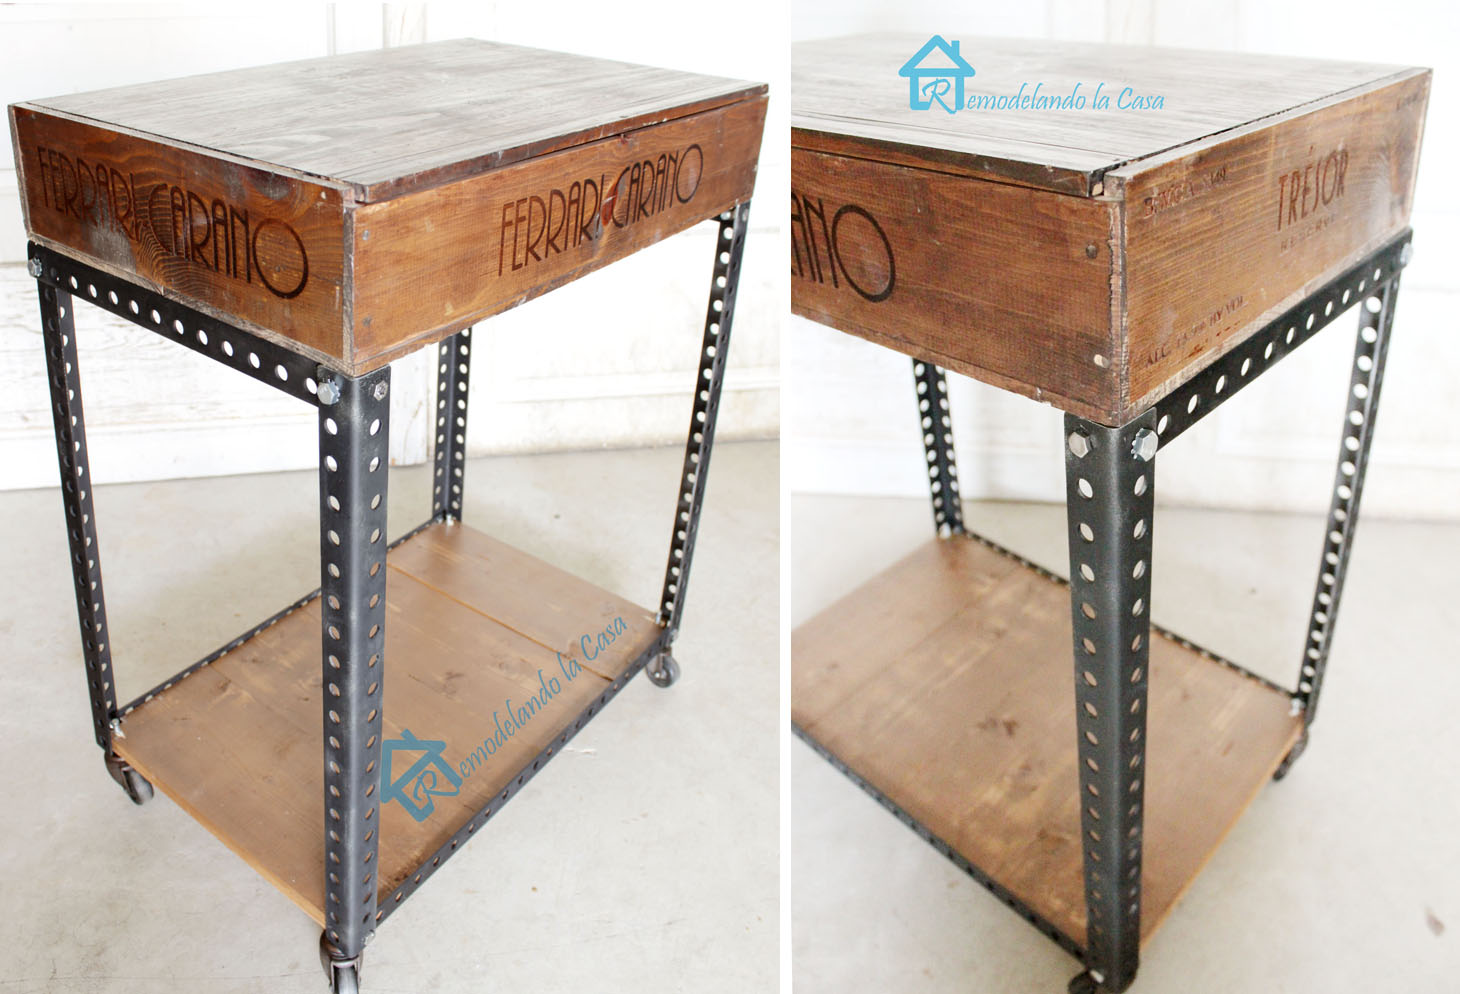 diy industrial side table remodelando la casa. Black Bedroom Furniture Sets. Home Design Ideas